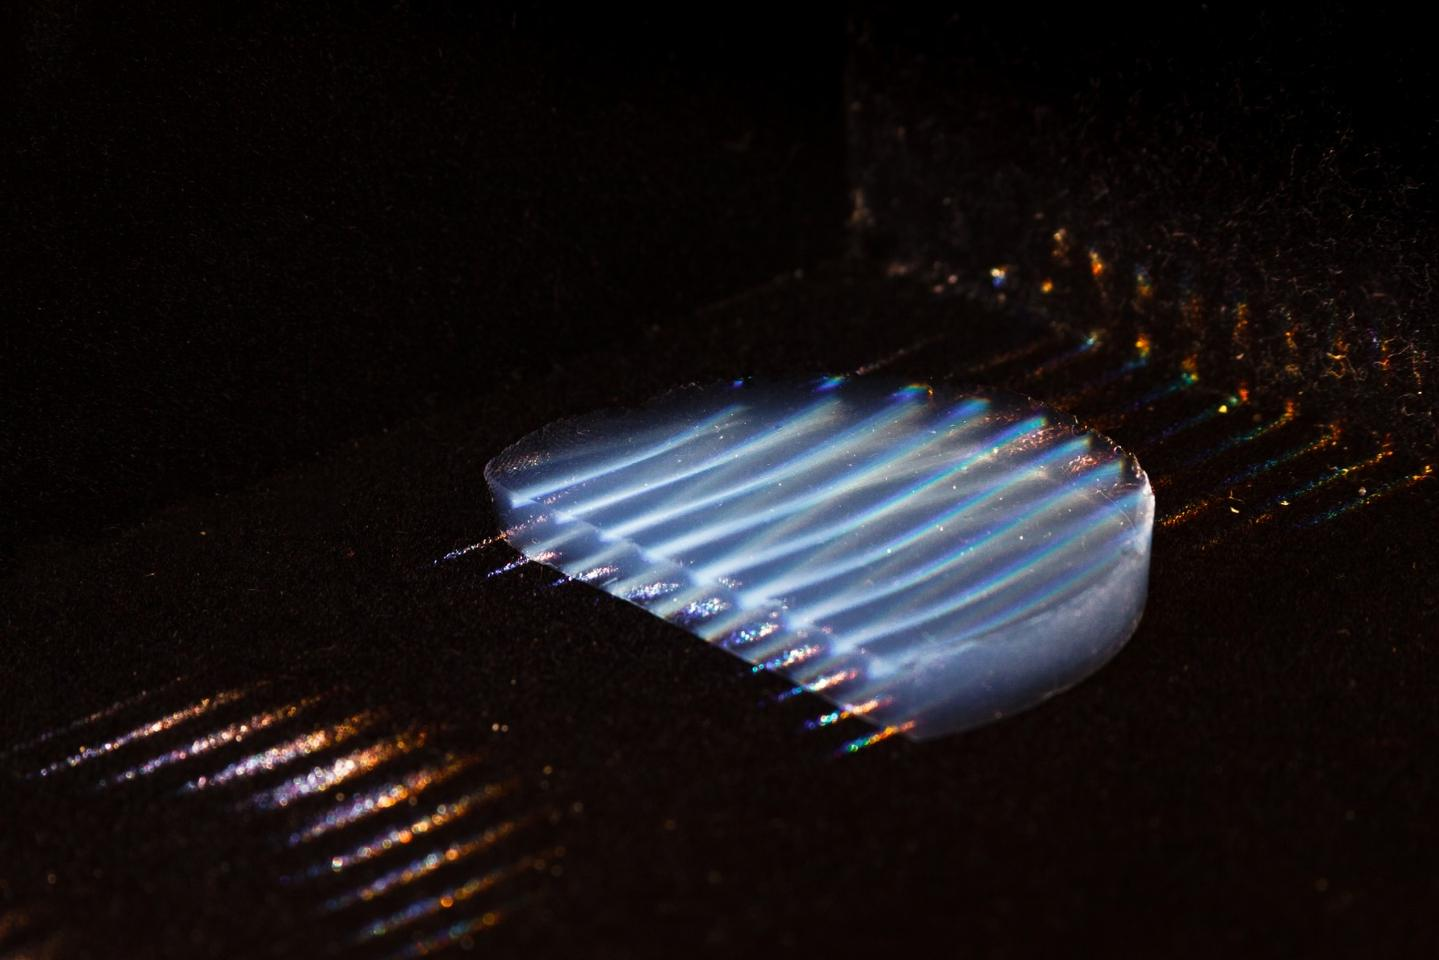 A sample of the aerogel, with parallel laser beams running through it to make it visible for the photo